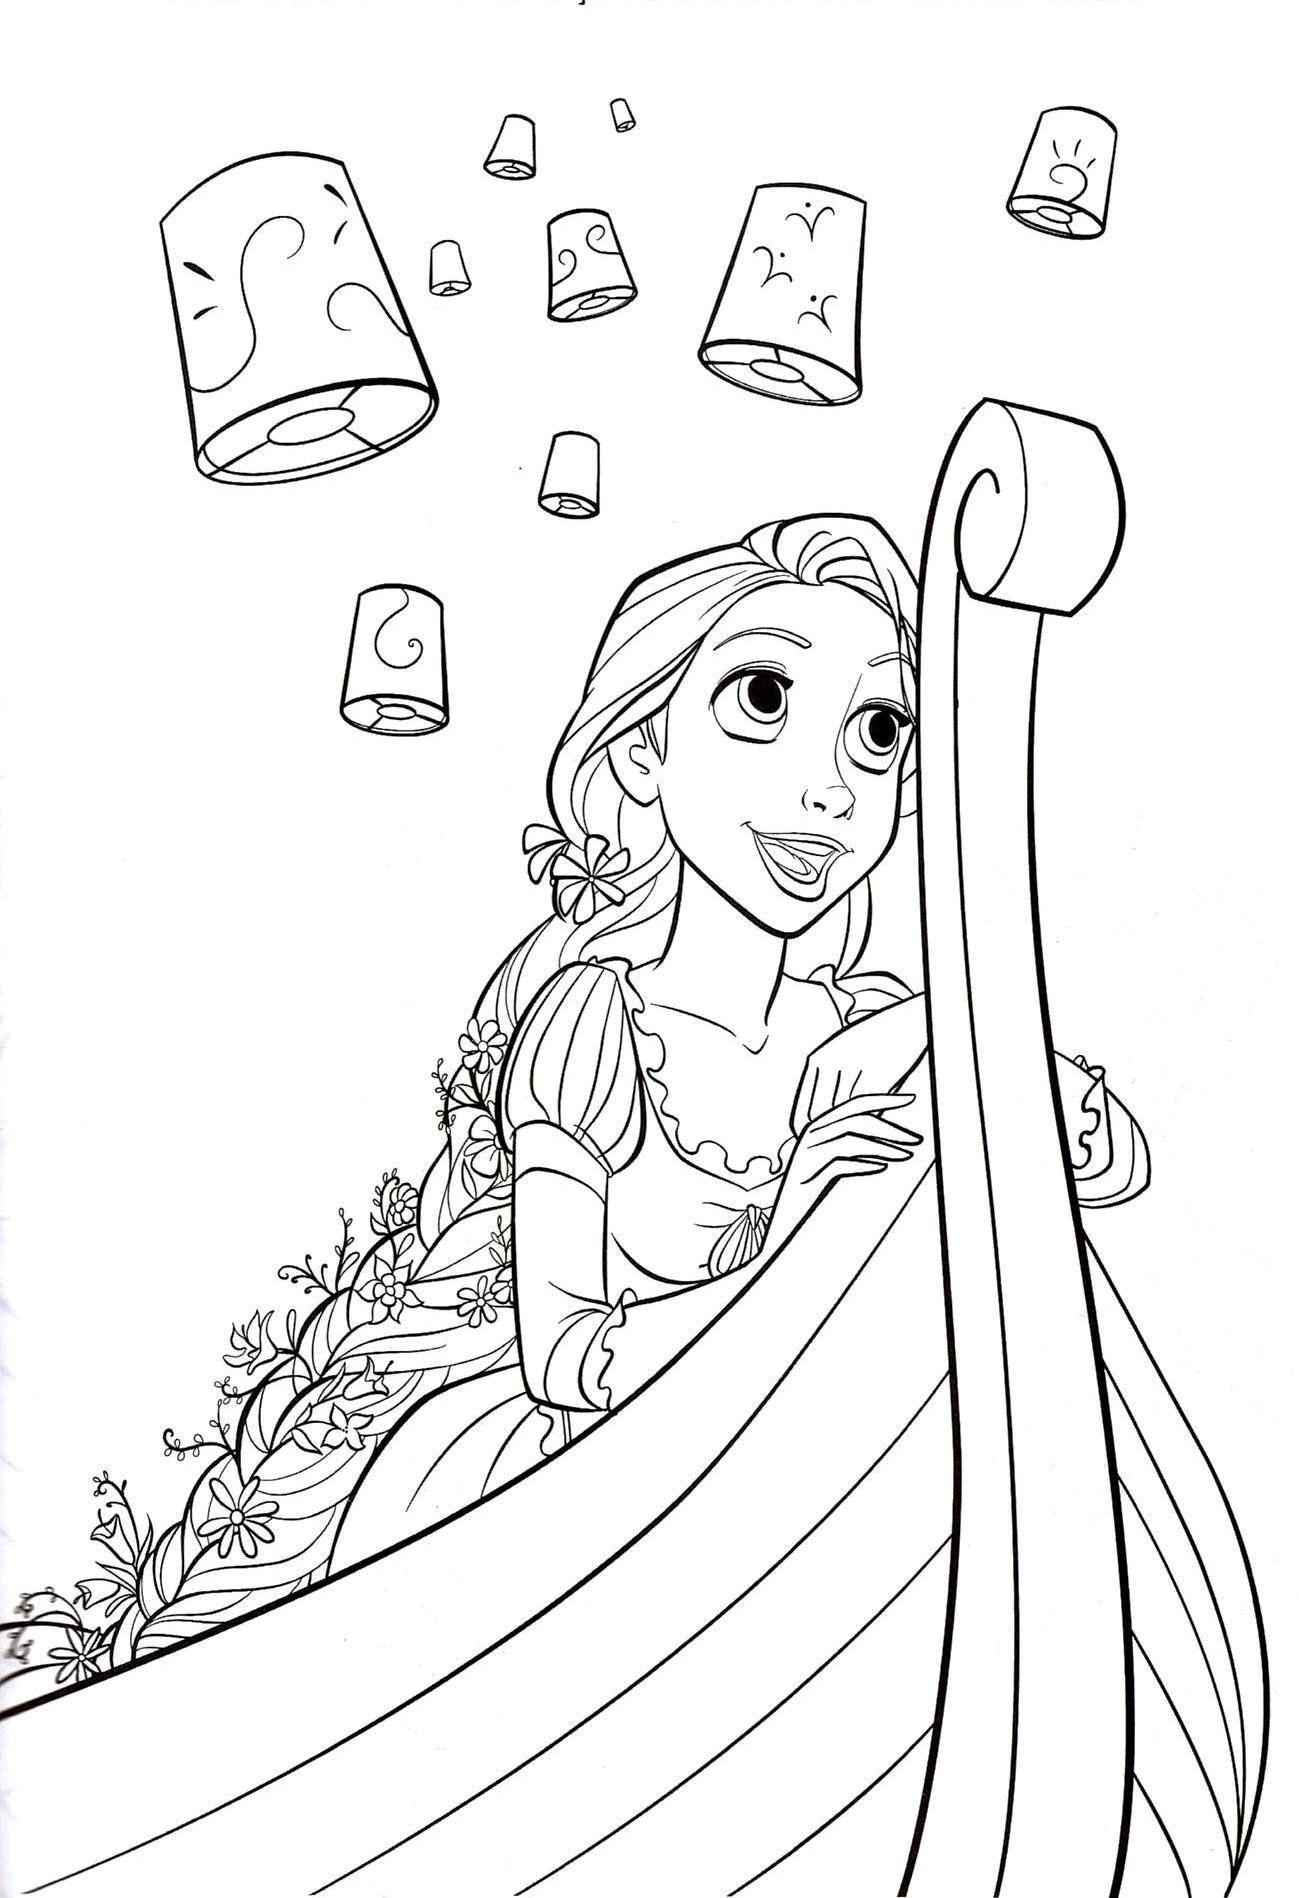 Disney Princess Tangled Coloring Pages At GetDrawings